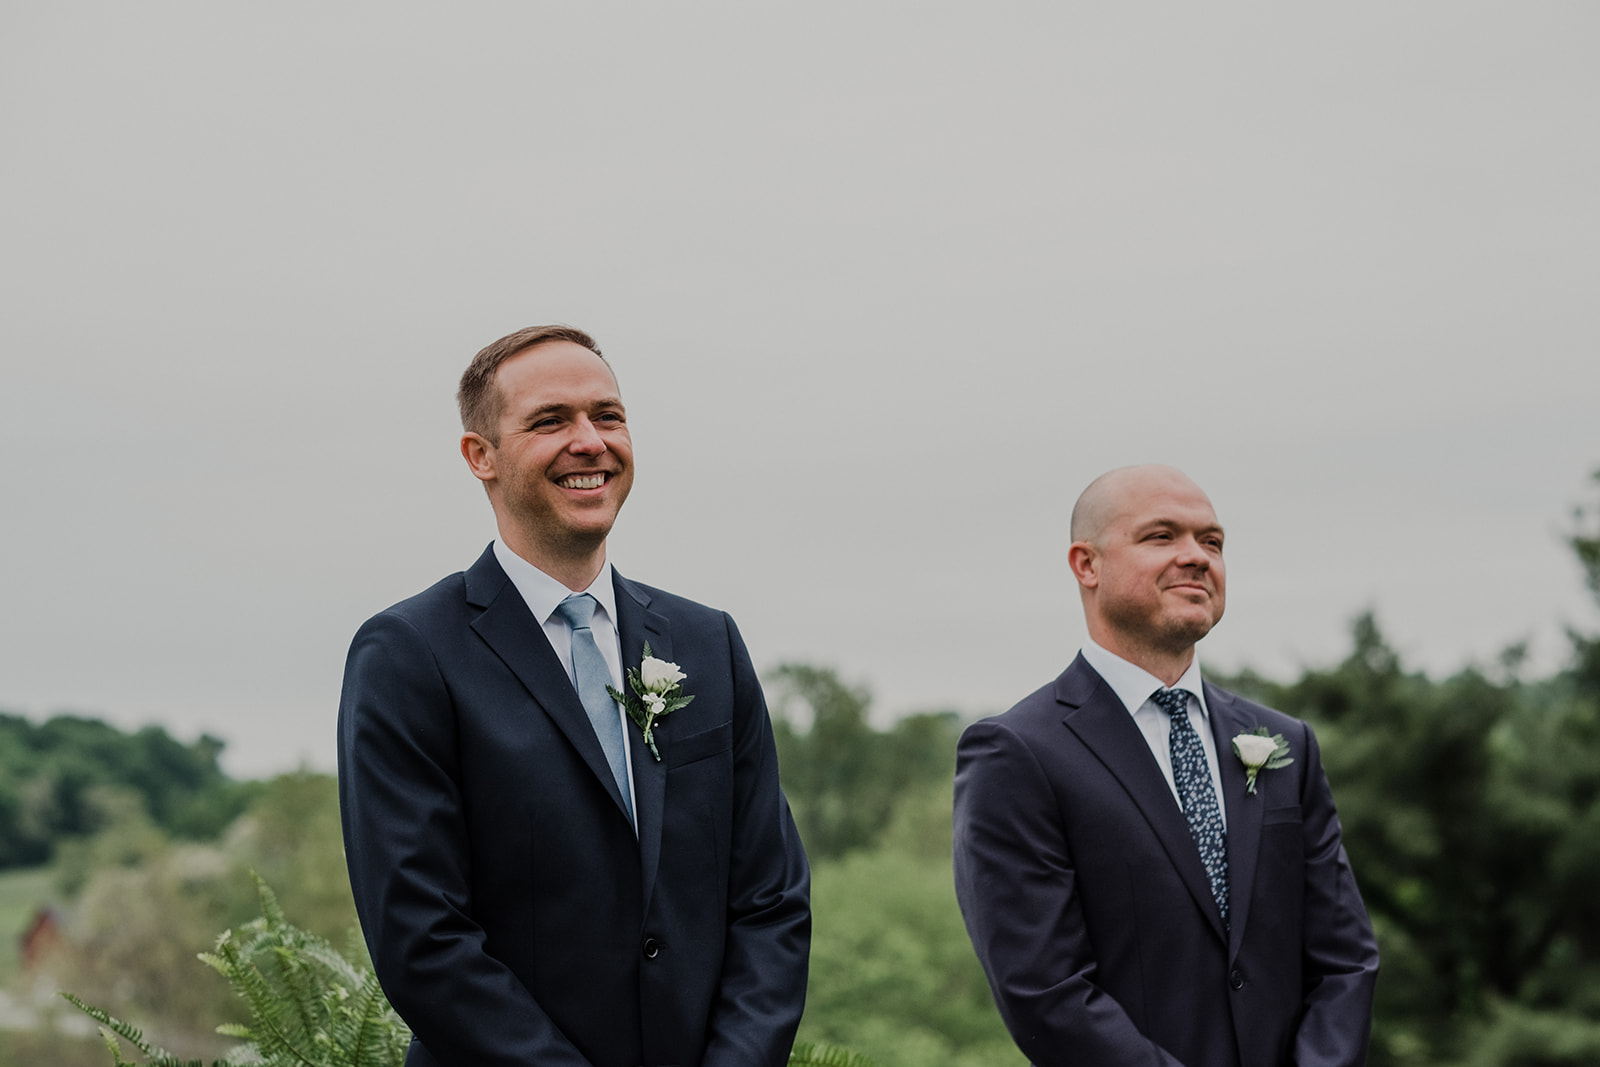 A groom smiles as he watches his bride walk down the aisle at their outdoor wedding ceremony at Blue Hill Farm in Waterford, VA.